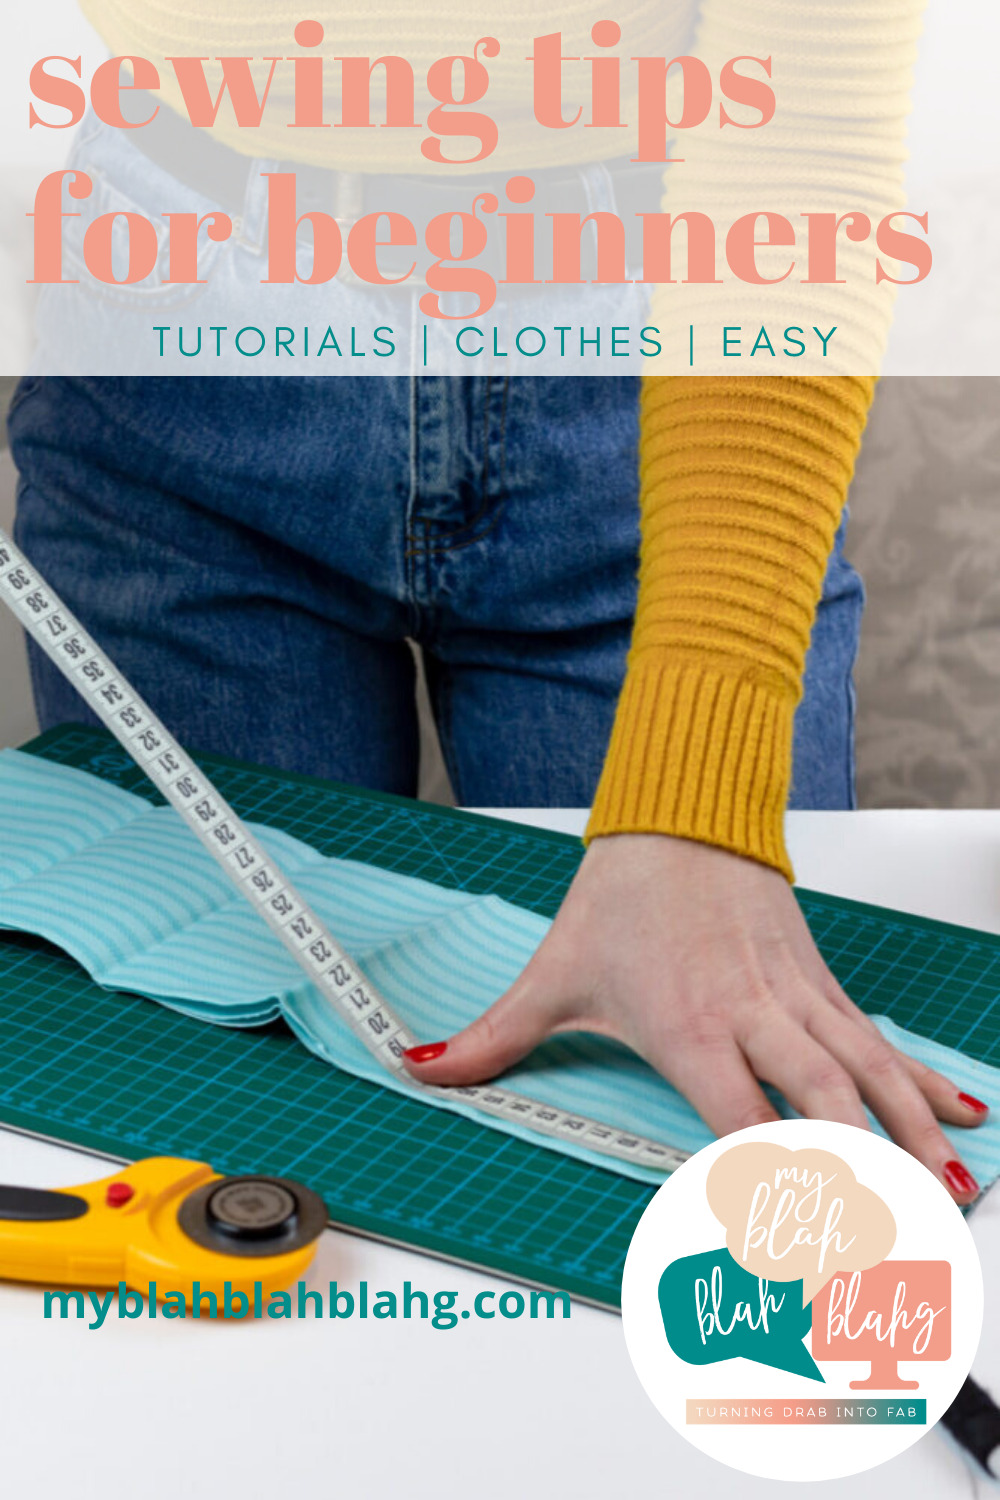 Thinking of learning to sew? Then you've got to check out our sewing hacks! They'll make learning to sew a lot easier. #MyBlahBlahBlahg #SewingHacksForBeginners #BeginnerSewingTips #EasySewingIdeas